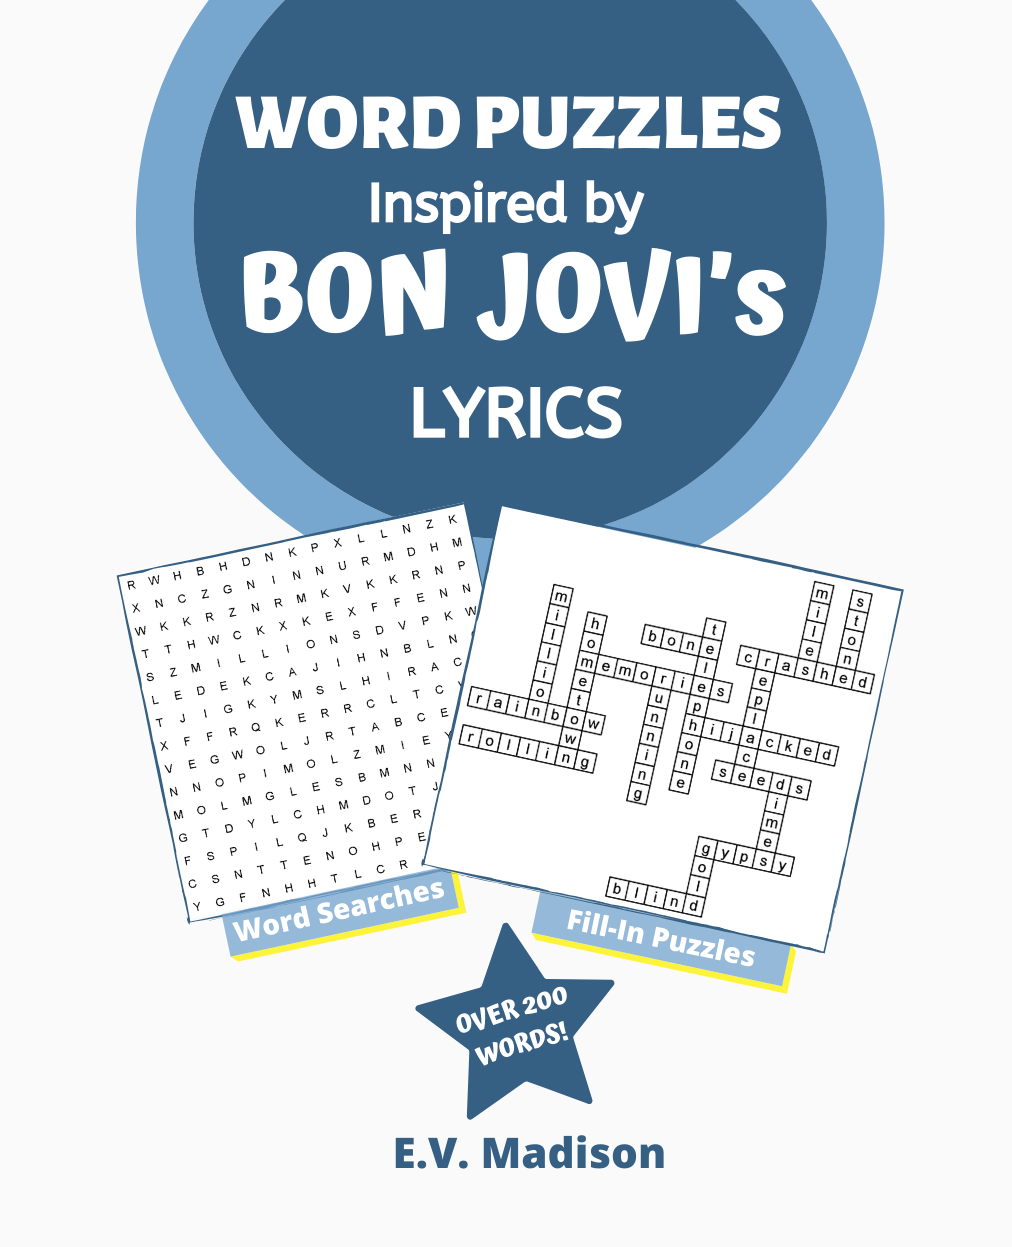 Word Puzzles Inspired by BON JOVI's Lyrics